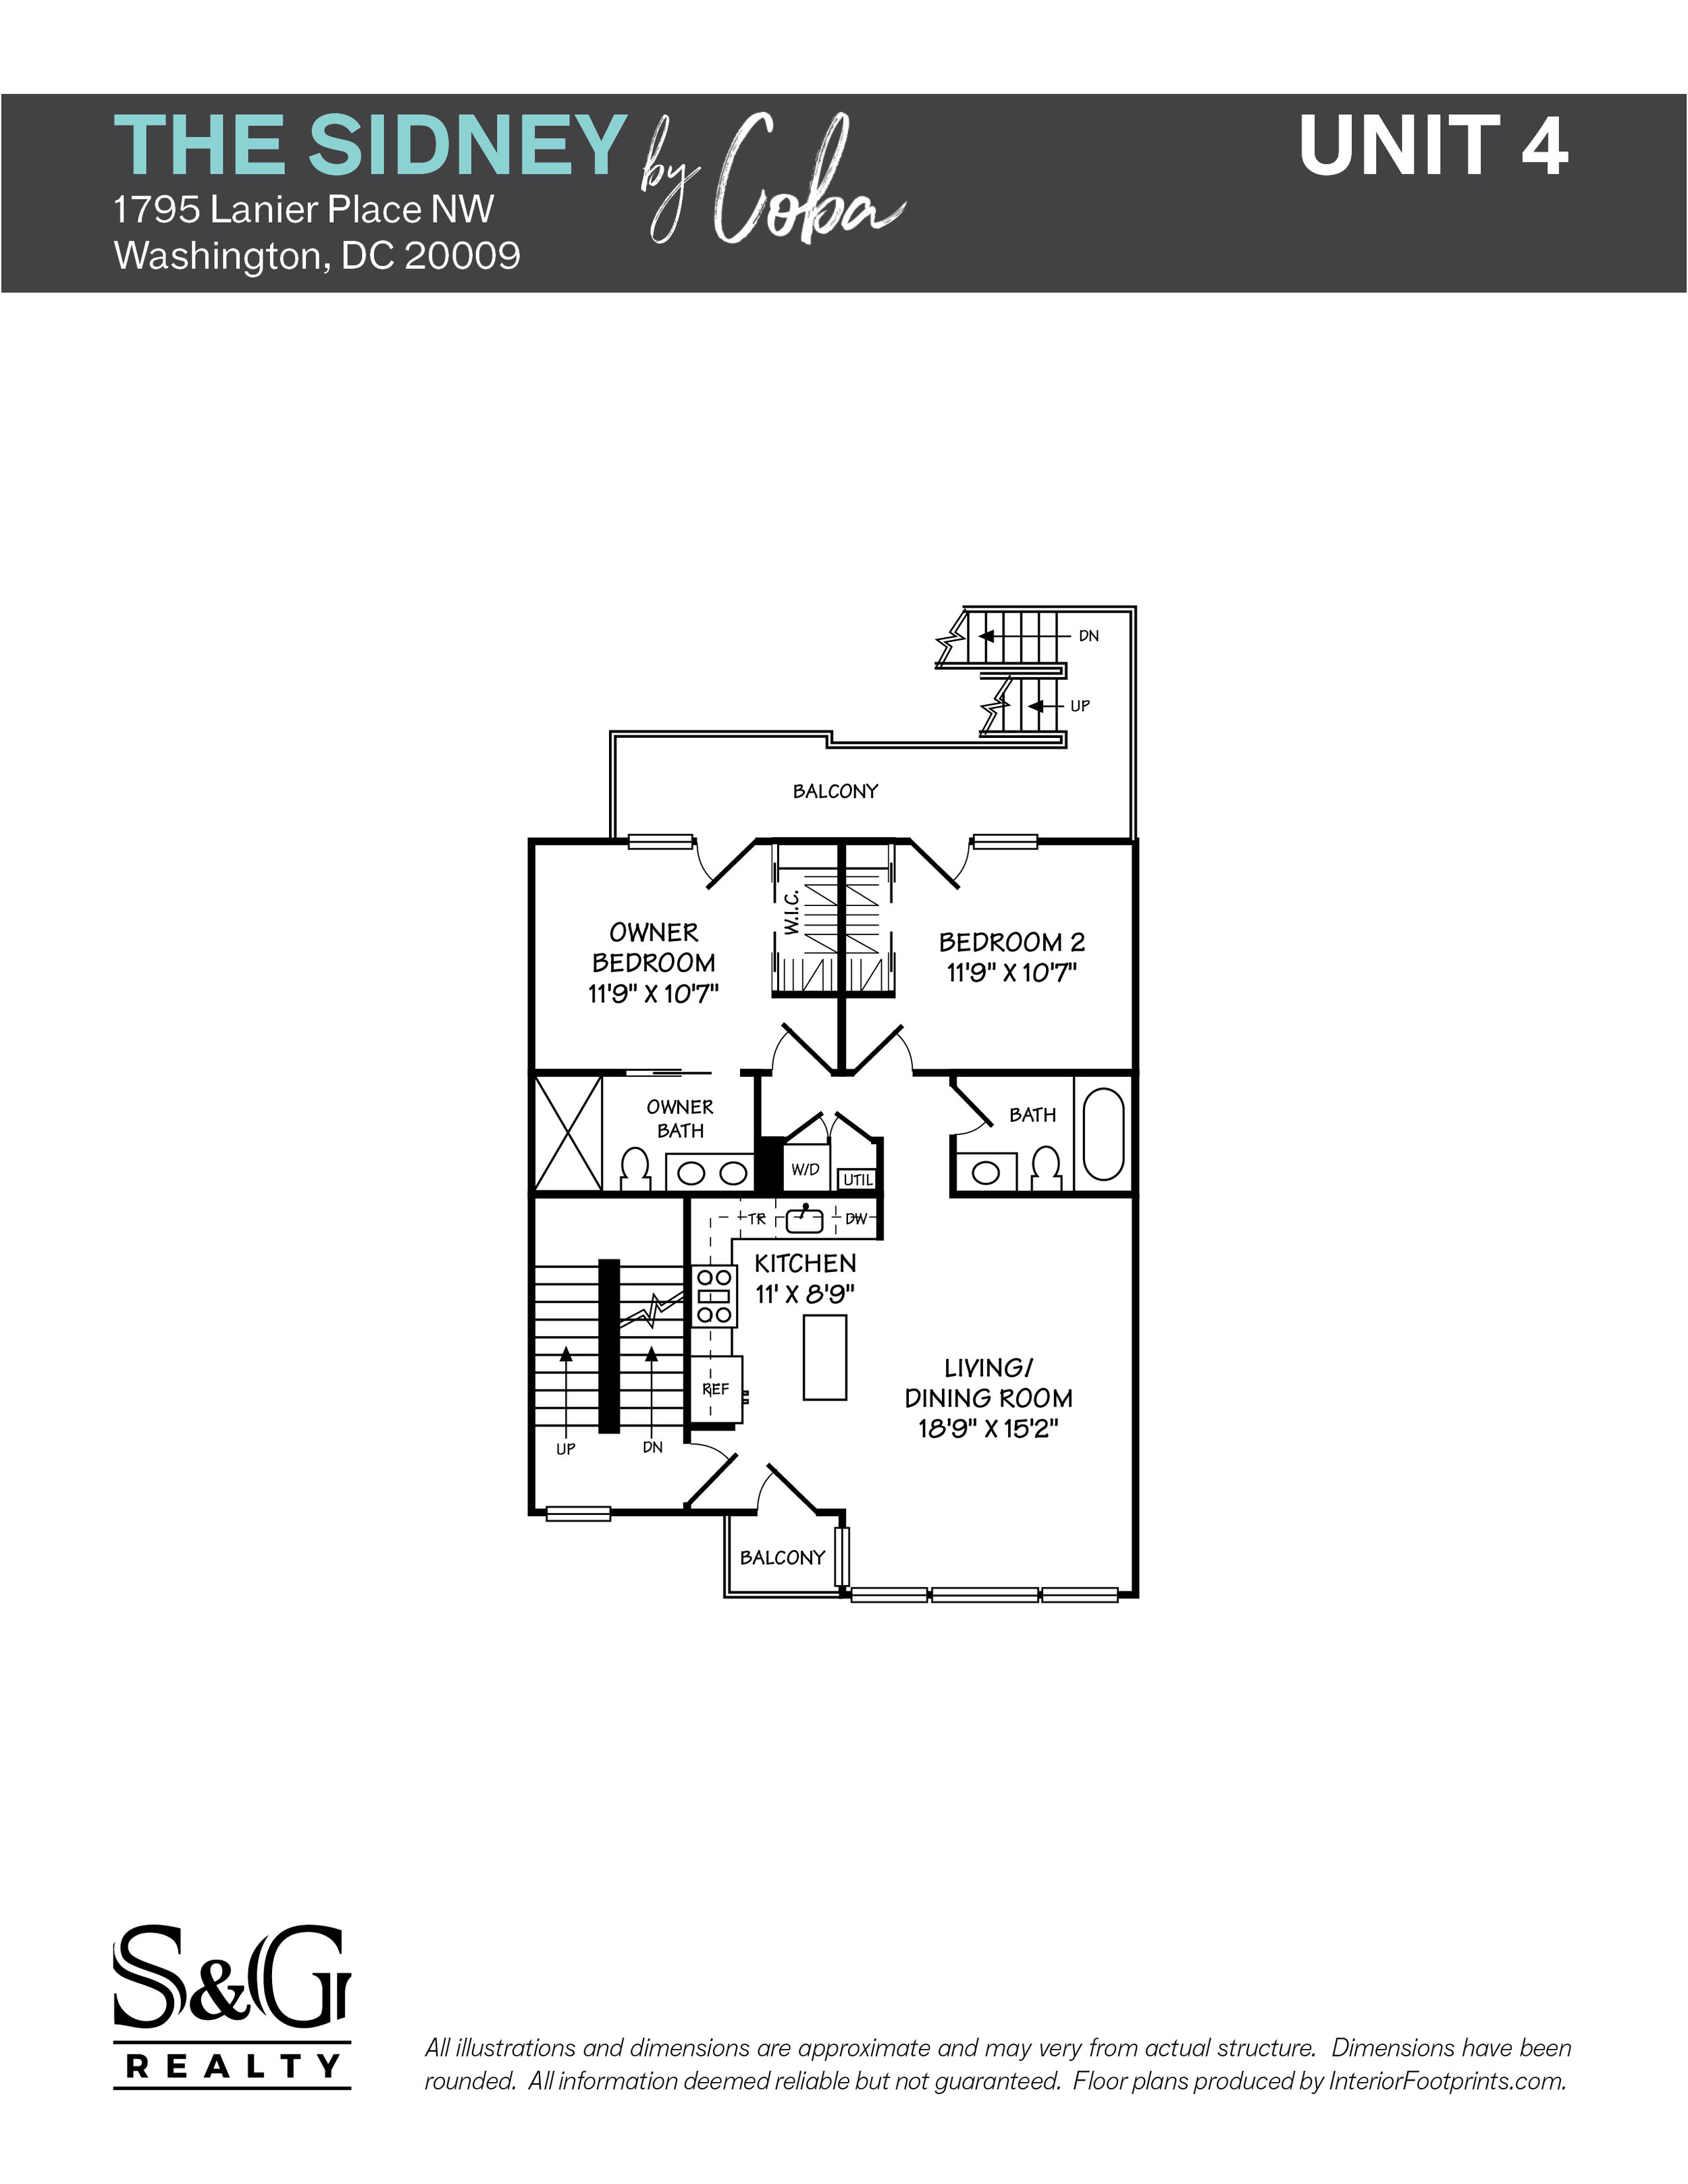 1795 Lanier Pl NW - Floor Plans - Unit 4.jpg